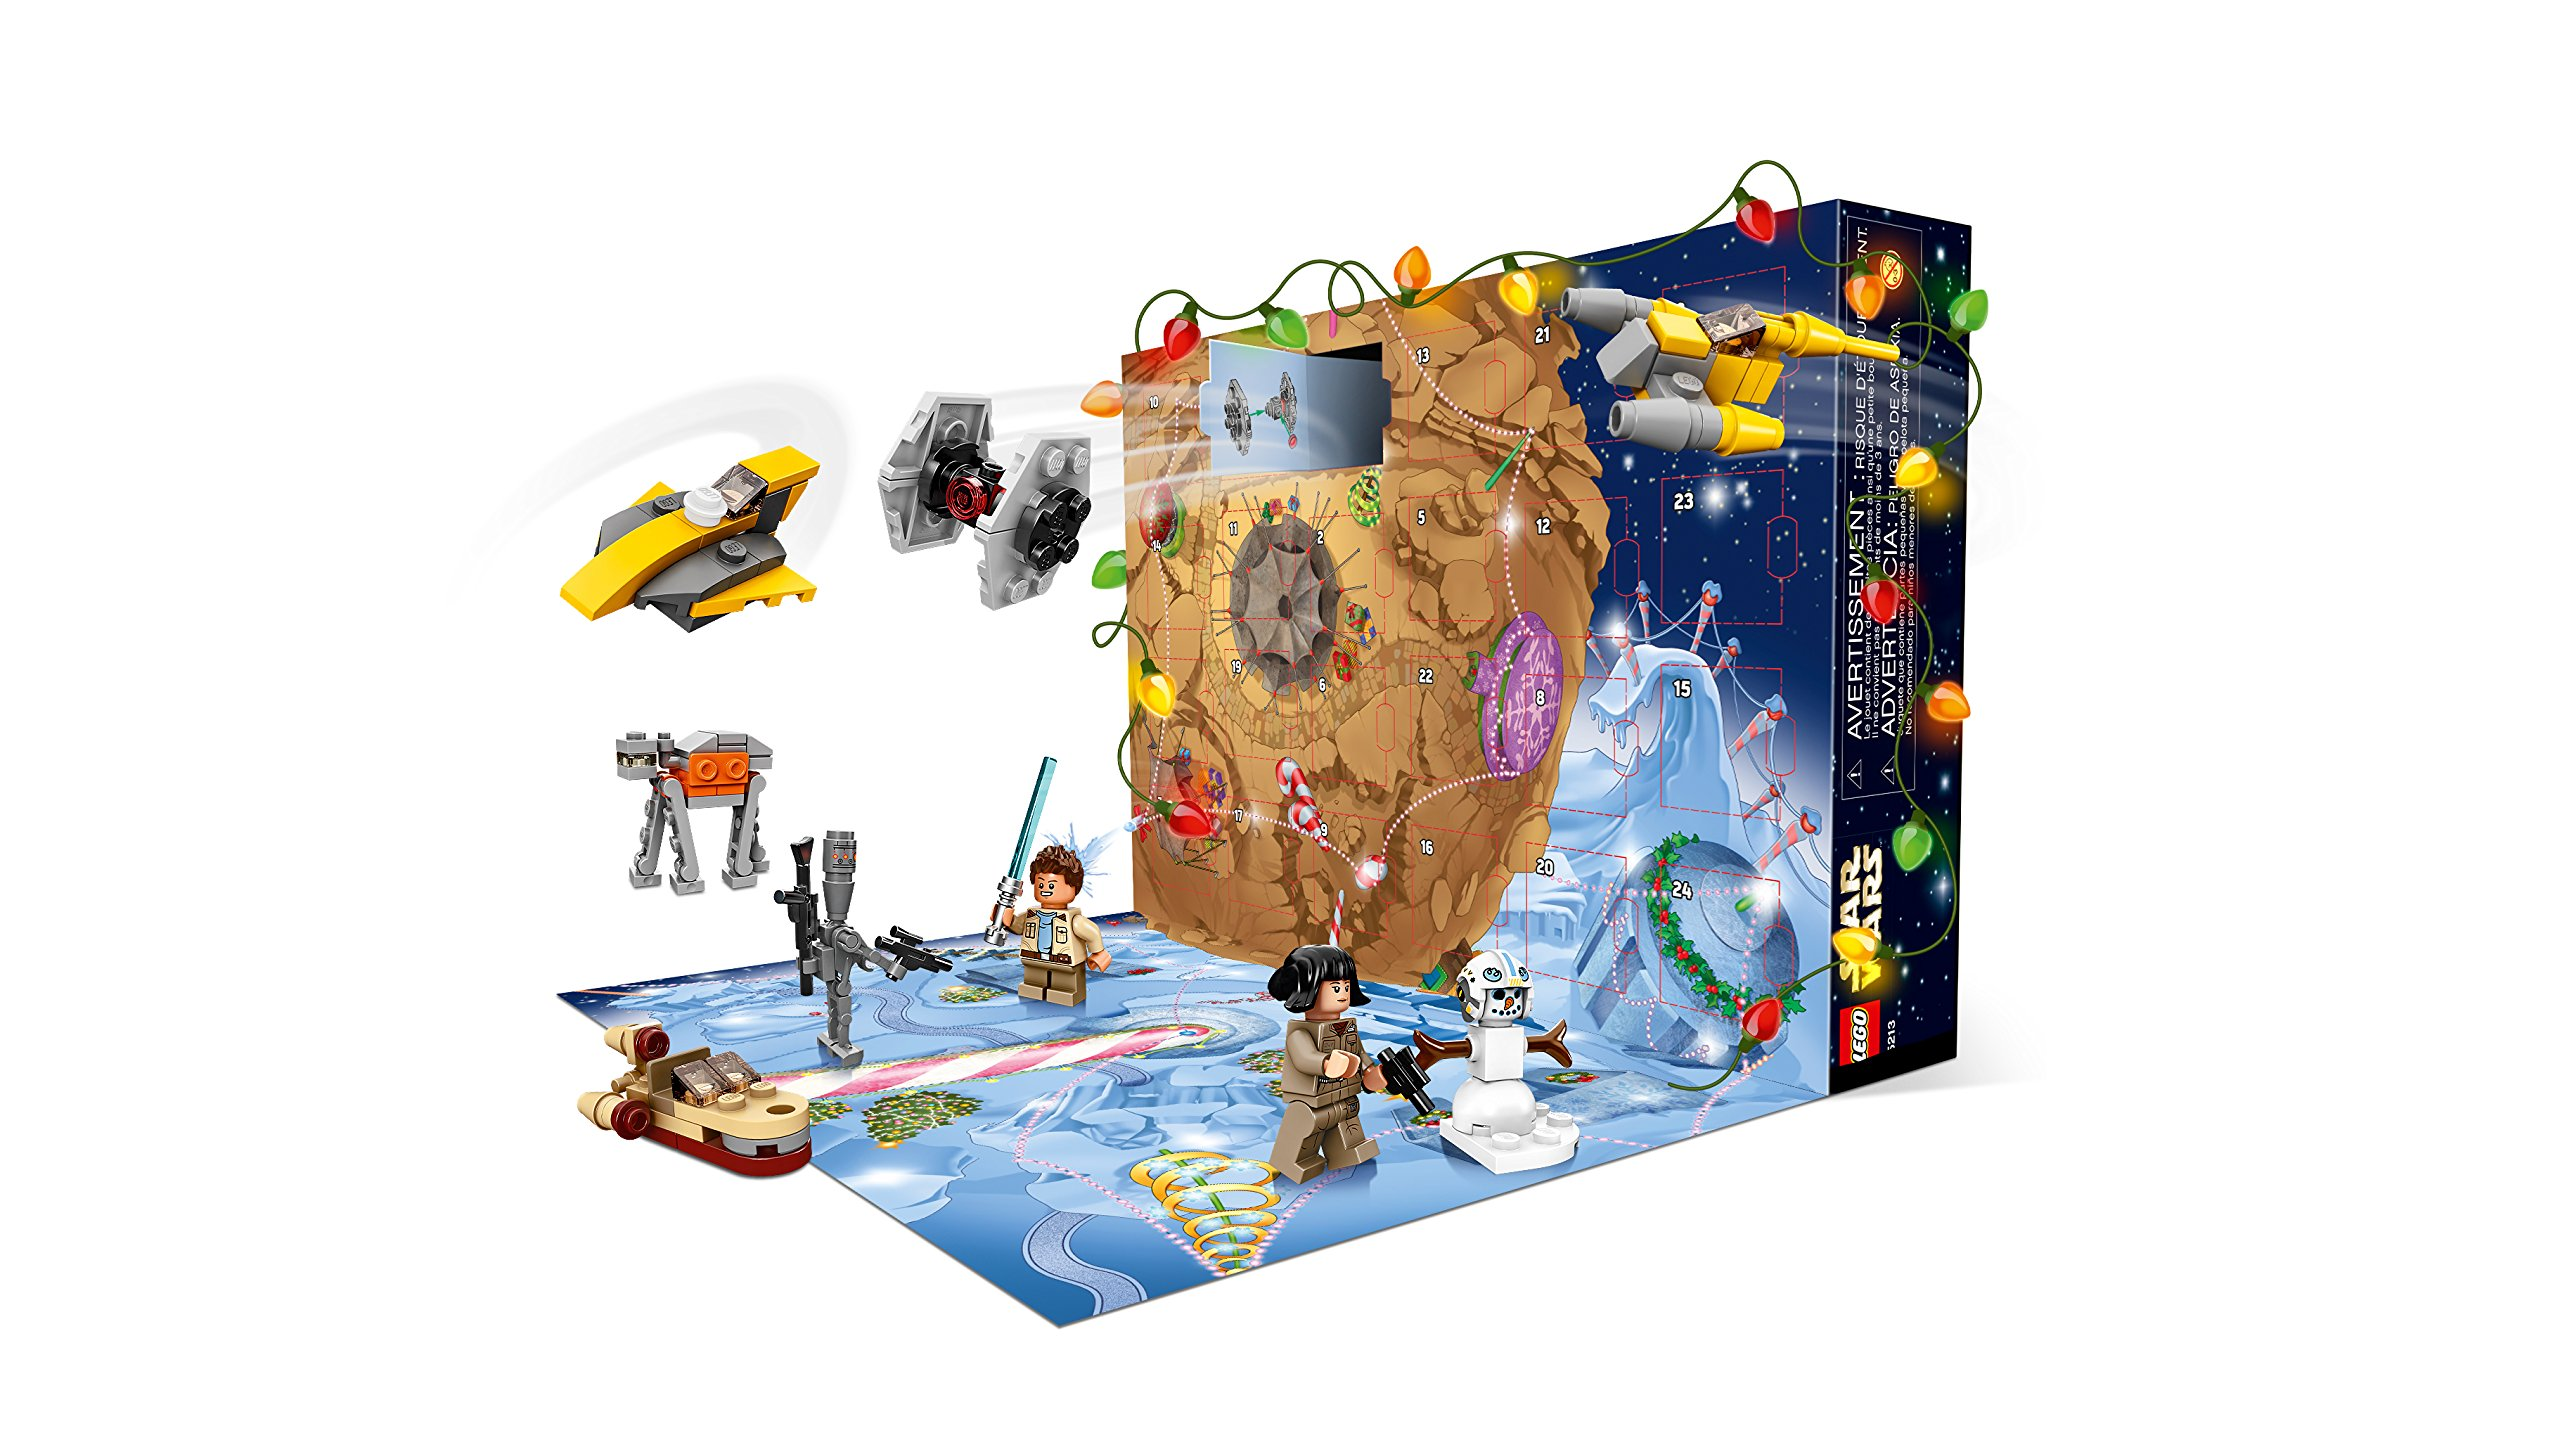 Lego Star Wars Calendario dell'Avvento, 75213 5 spesavip